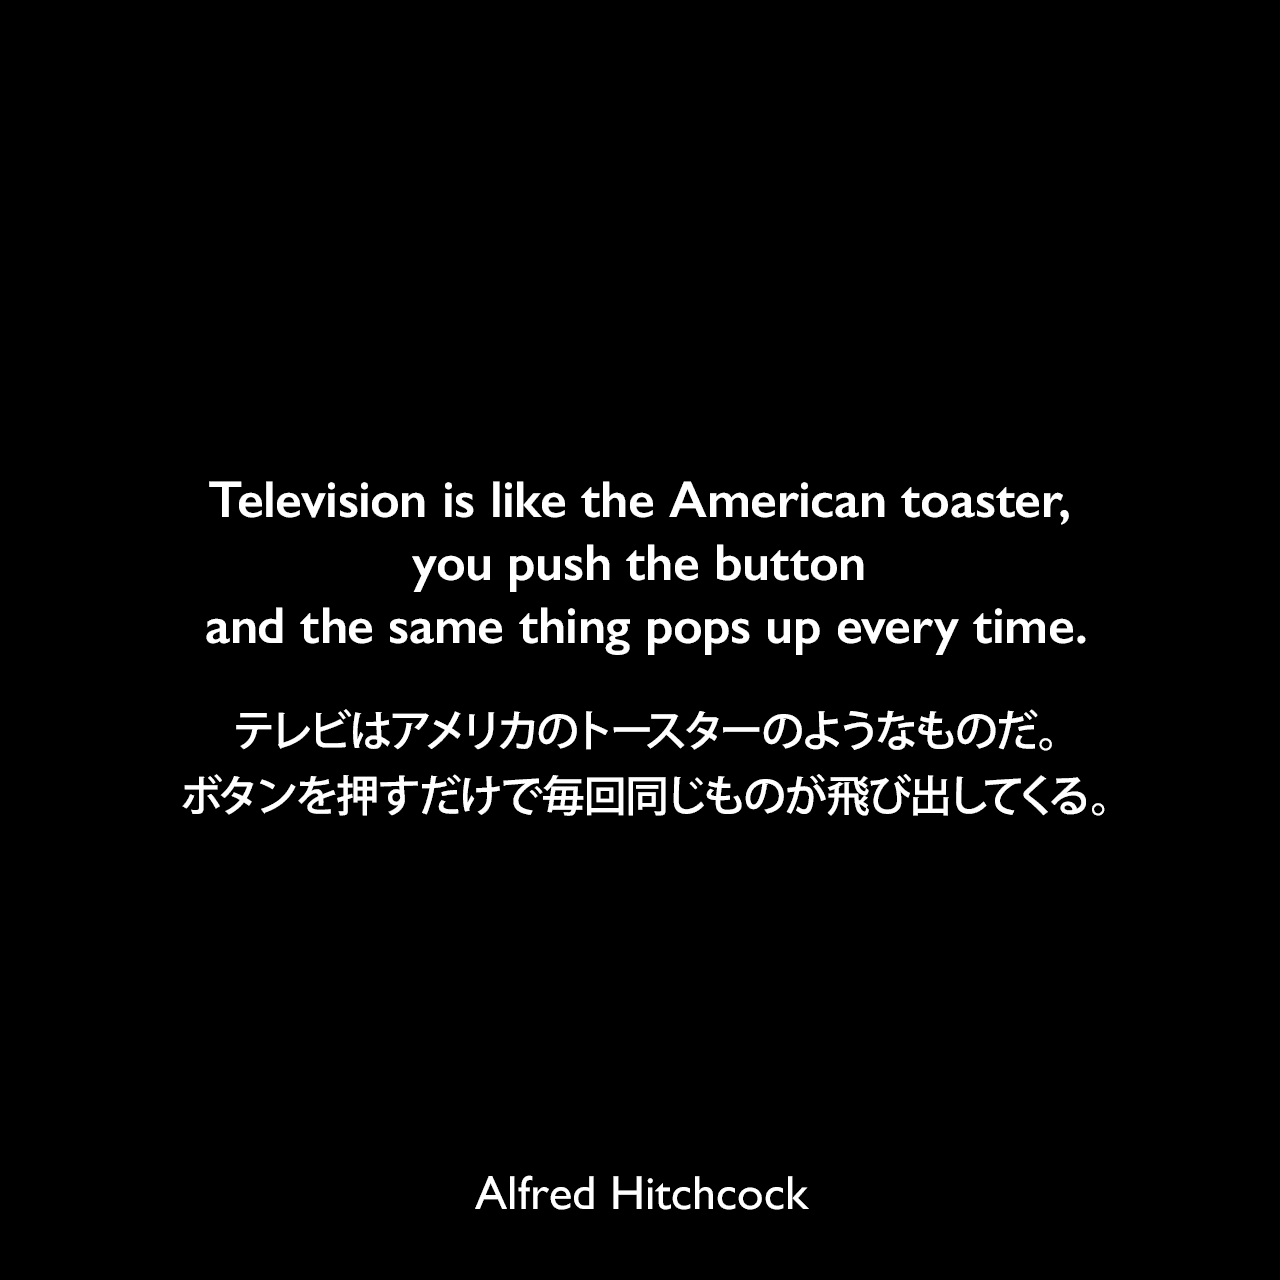 Television is like the American toaster, you push the button and the same thing pops up every time.テレビはアメリカのトースターのようなものだ。ボタンを押すだけで毎回同じものが飛び出してくる。Alfred Hitchcock